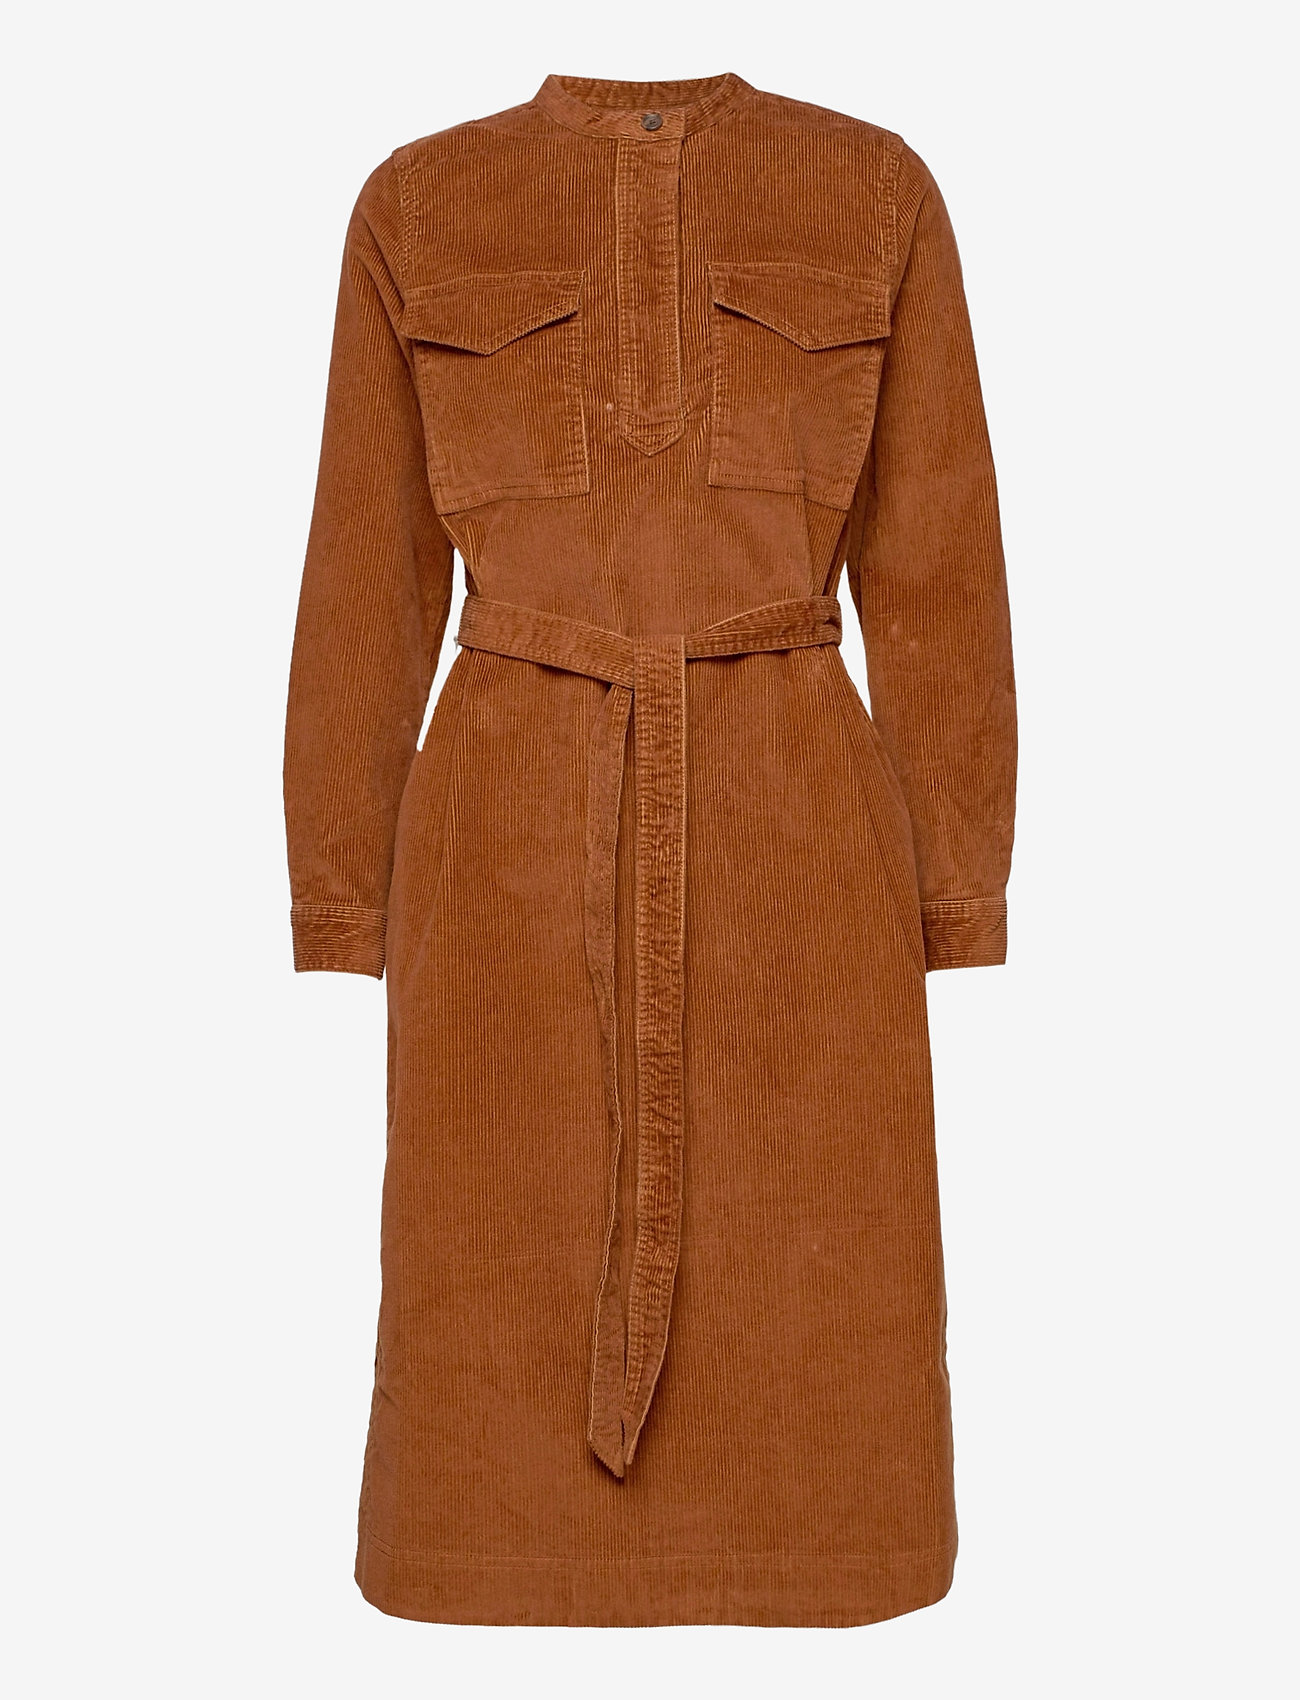 GAP - LS CORD SHIRTDRESS - everyday dresses - chestnut 616 - 0